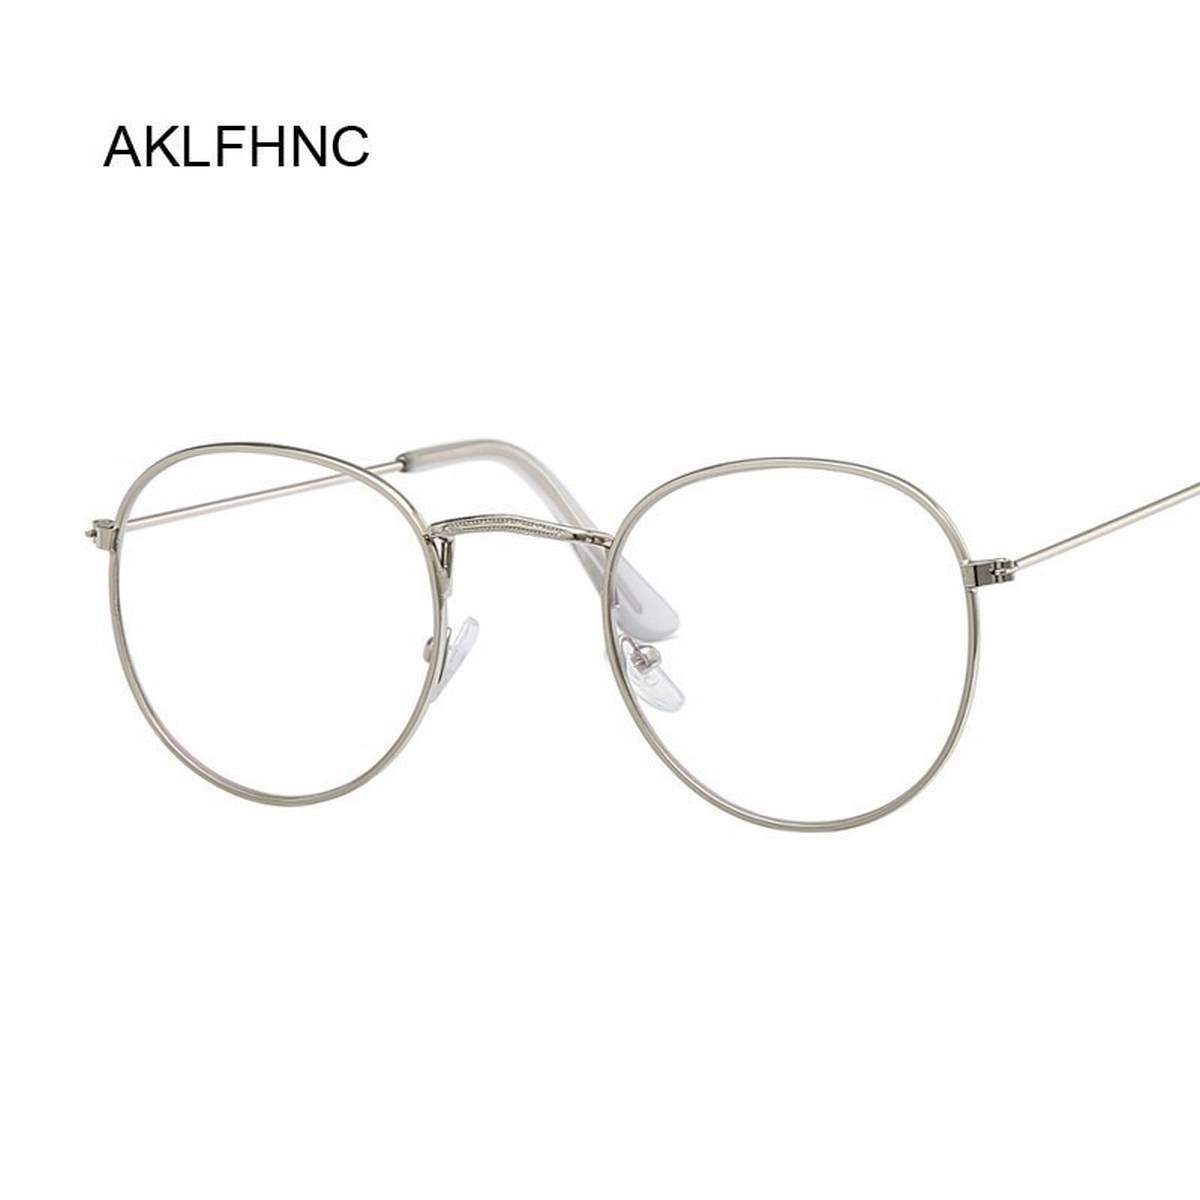 Best Quality New Design Half Round Transparent Stylish Glasses with Silver Frame For Men/Women